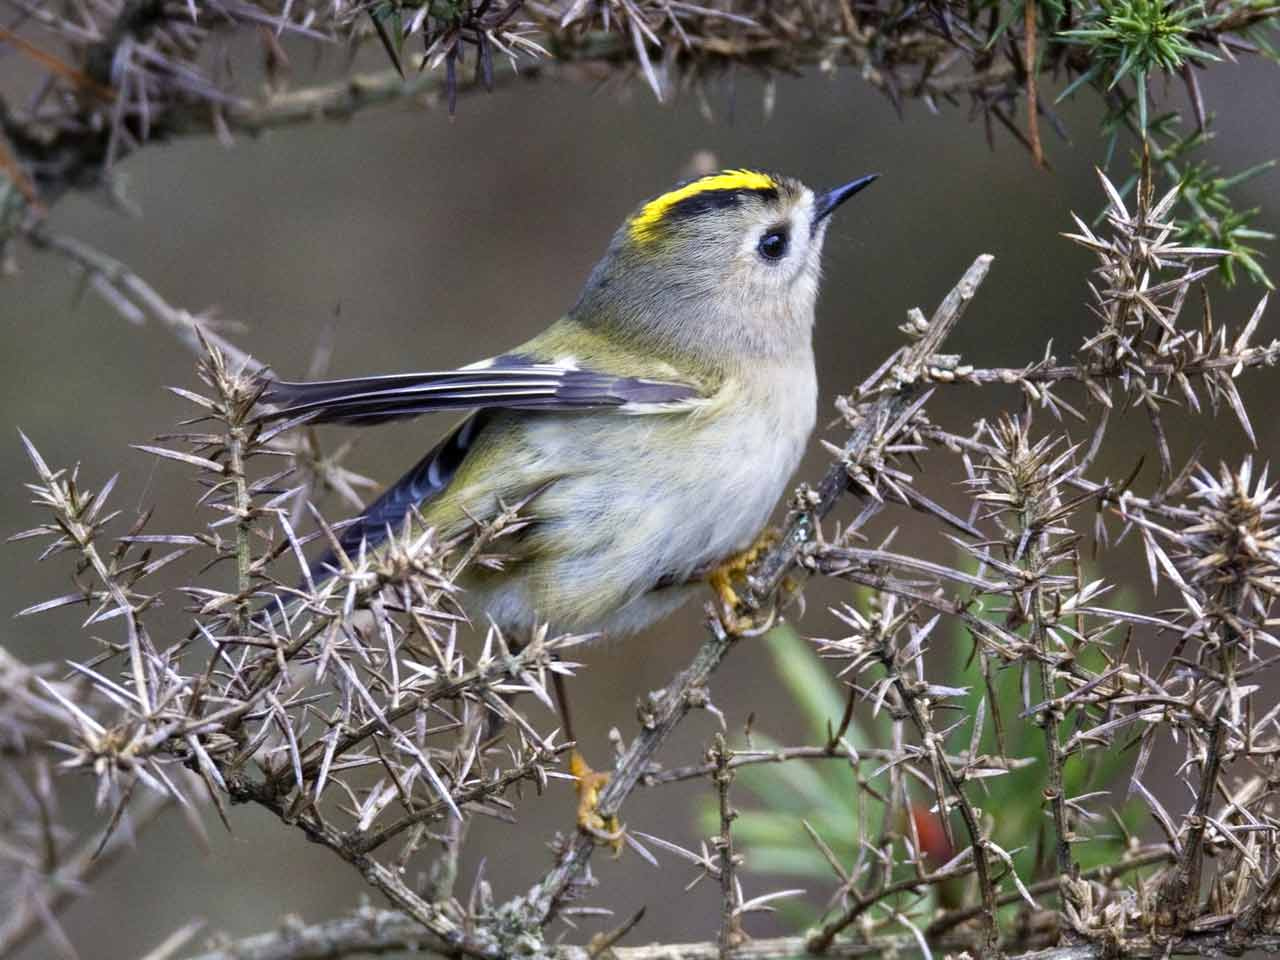 The Goldcrest